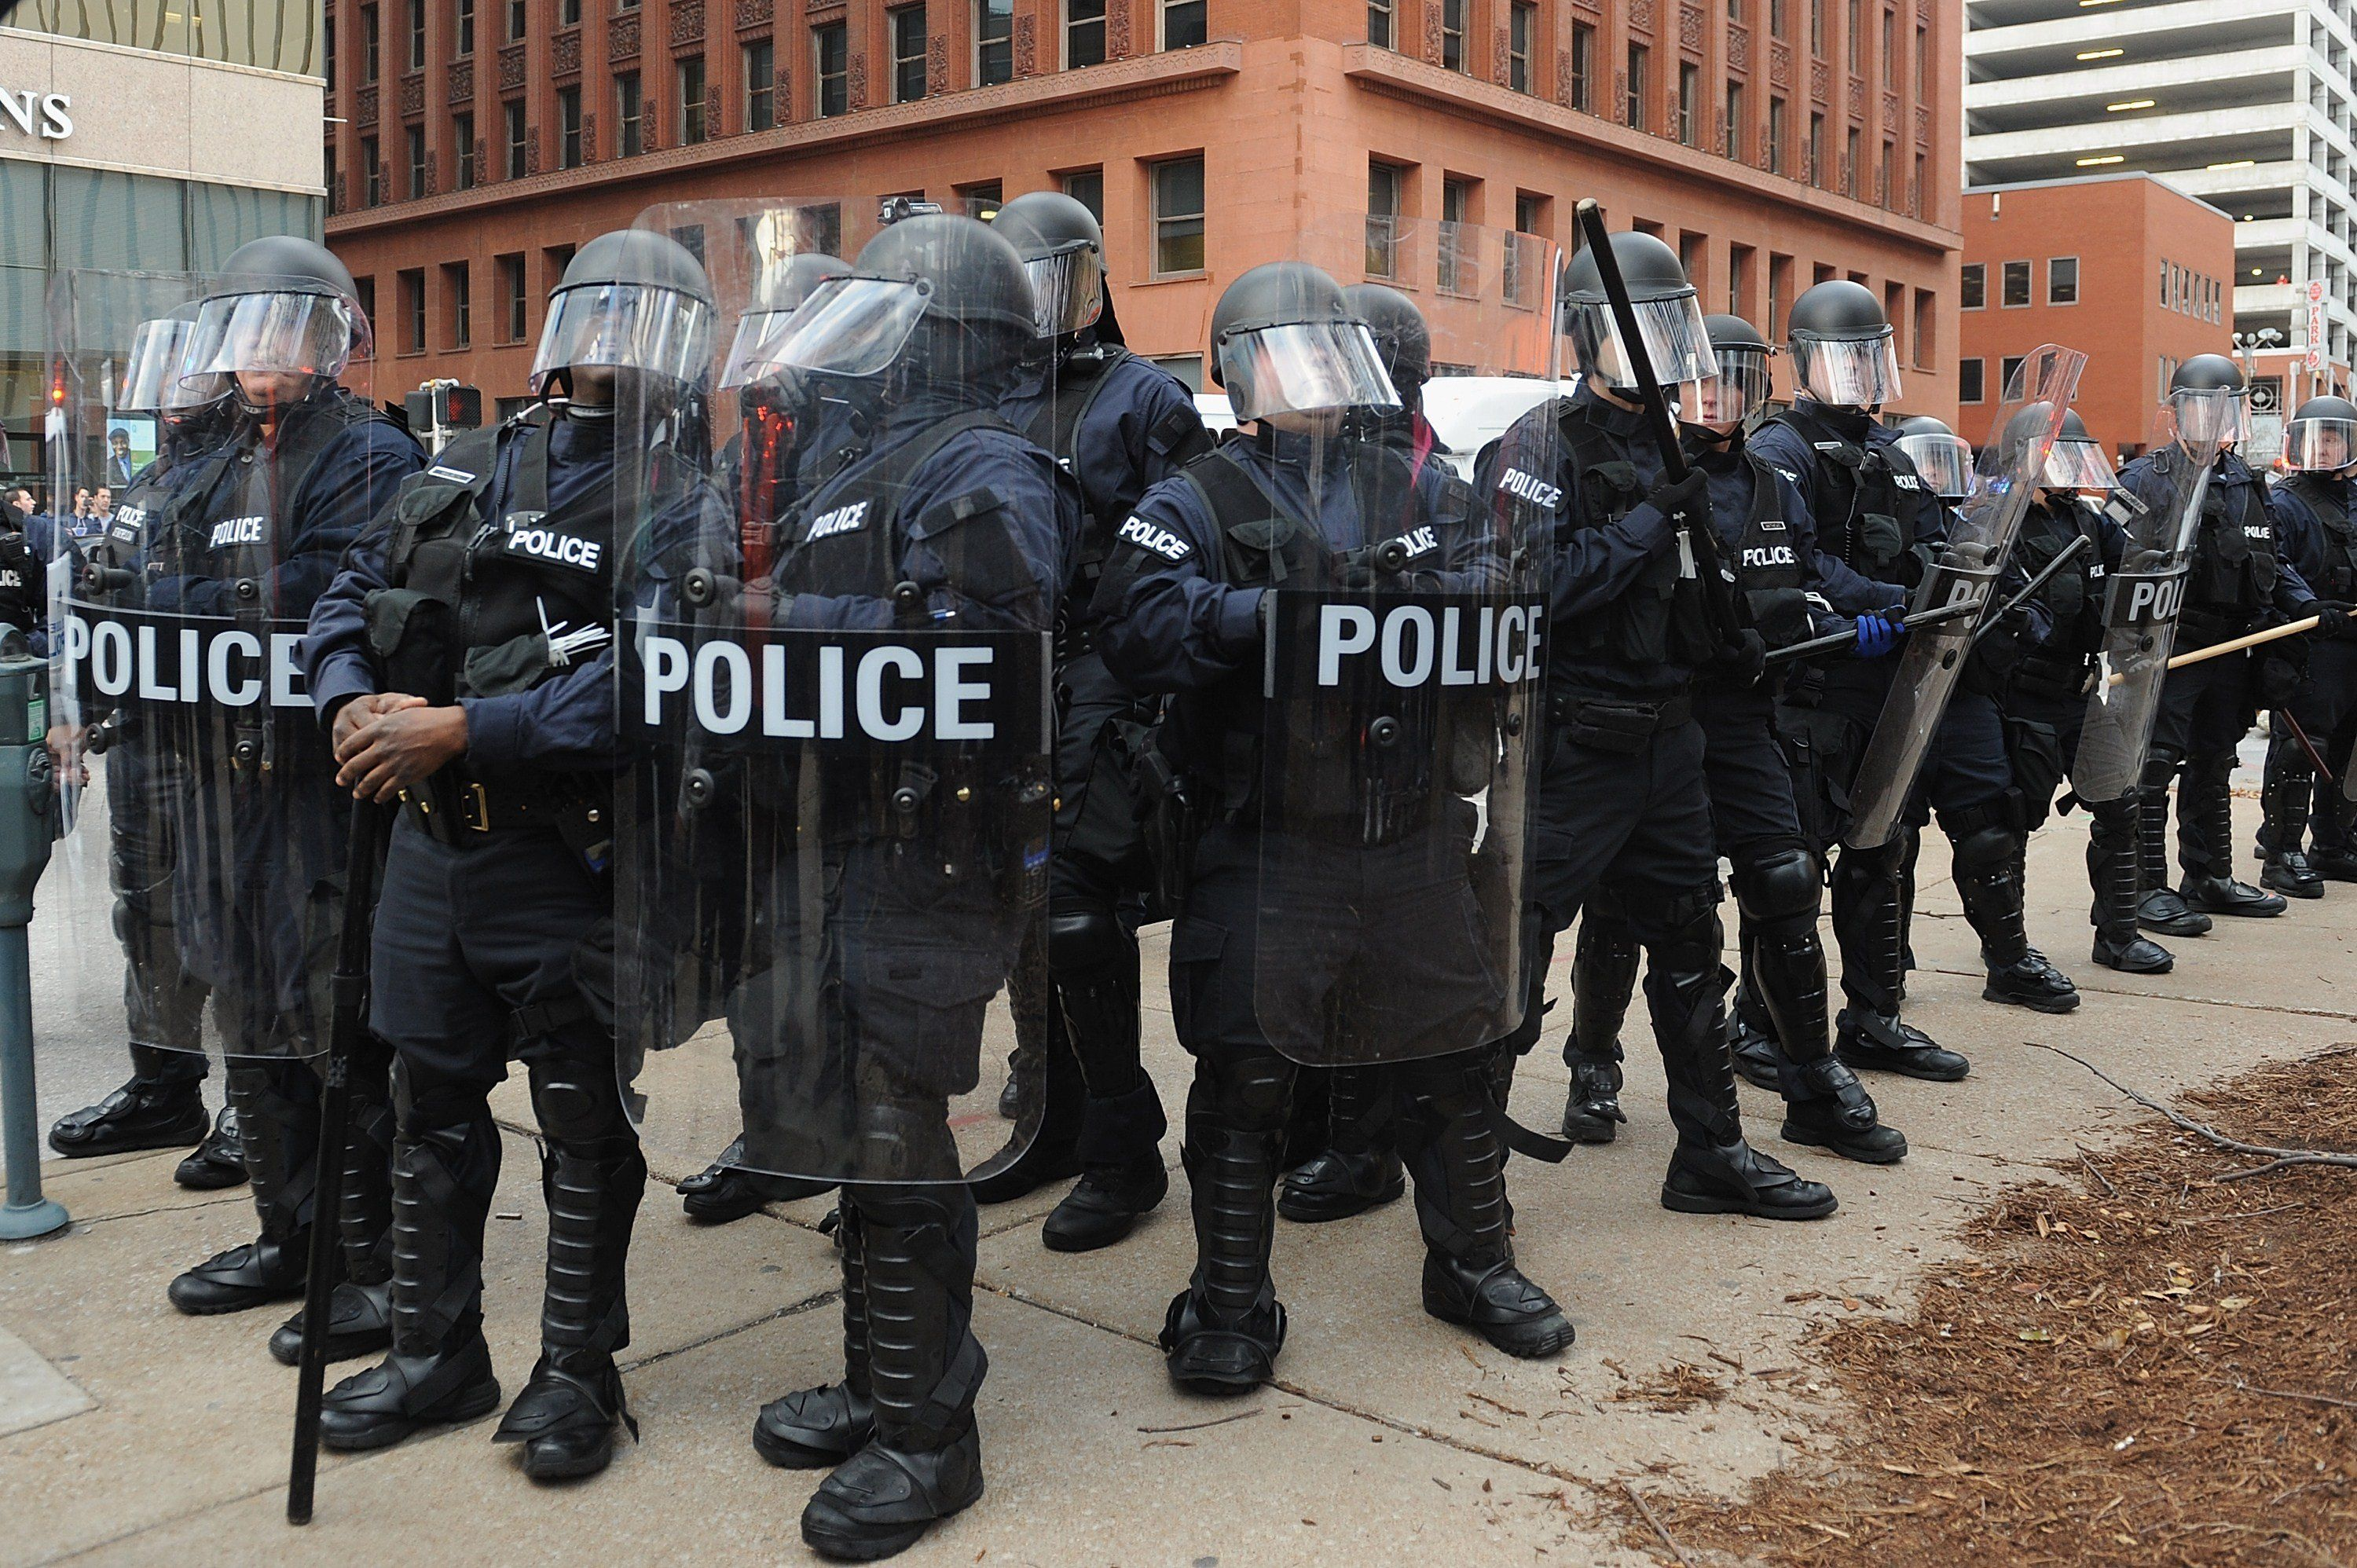 Police officers stand on alert after an arrest was made during a protest in downtown St. Louis, Missouri on November 30, 2014. Demonstrators marched through the streets of St. Louis that eventually led to clashes with police officers and fans from an American Football game between the St. Louis Rams and Oakland Raiders.AFP PHOTO/Michael B. Thomas        (Photo credit should read Michael B. Thomas/AFP/Getty Images)